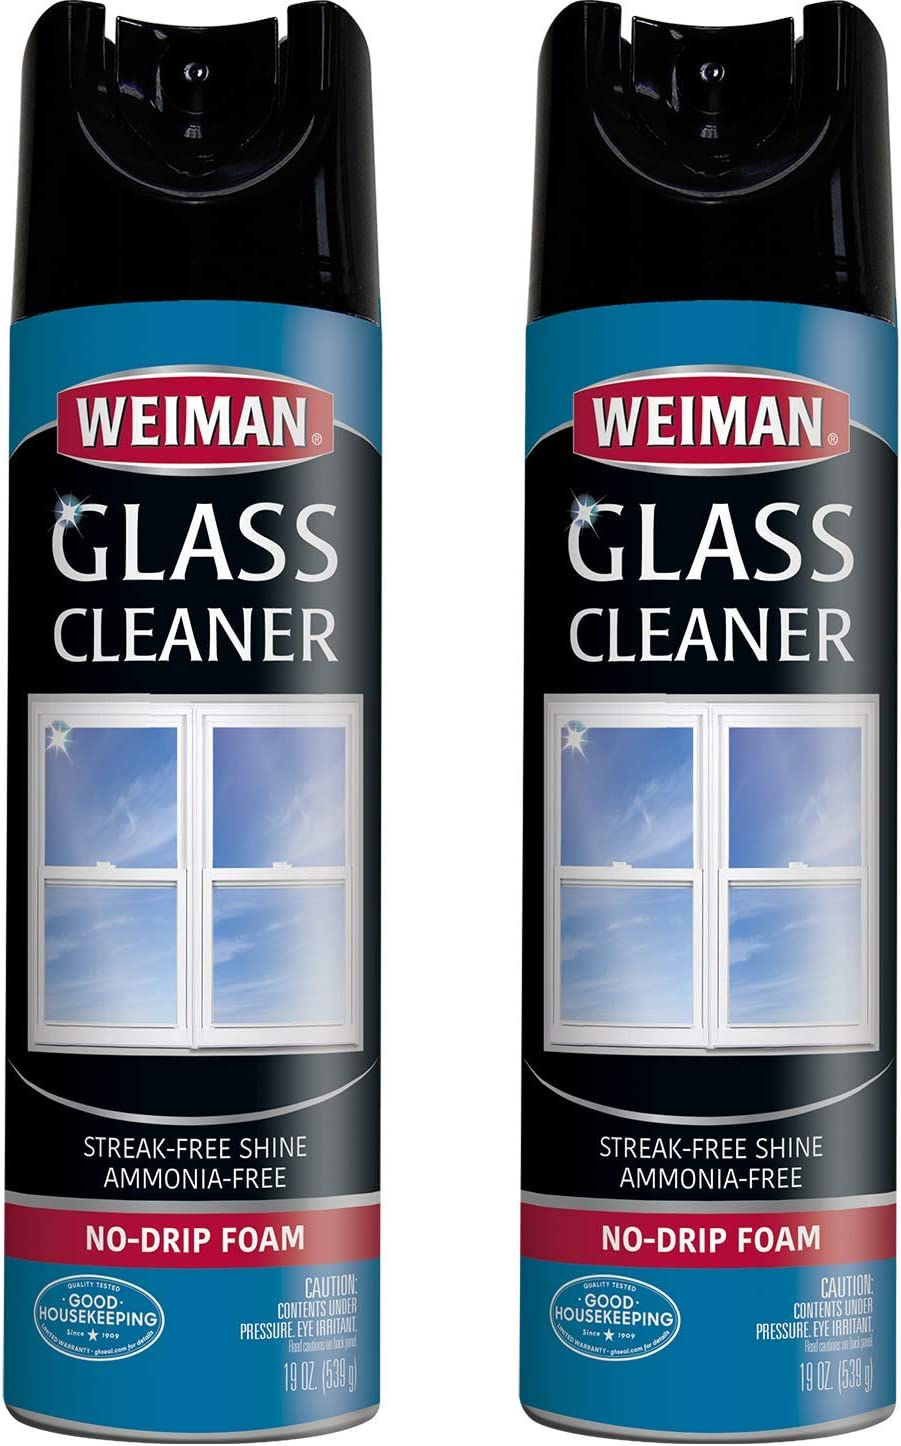 Weiman Glass Cleaner - 19 Ounce (2 Pack) - Non-Toxic Professional Streak-Less foaming No Drip Removes Grease Dissolves Fingerprints and Smudges